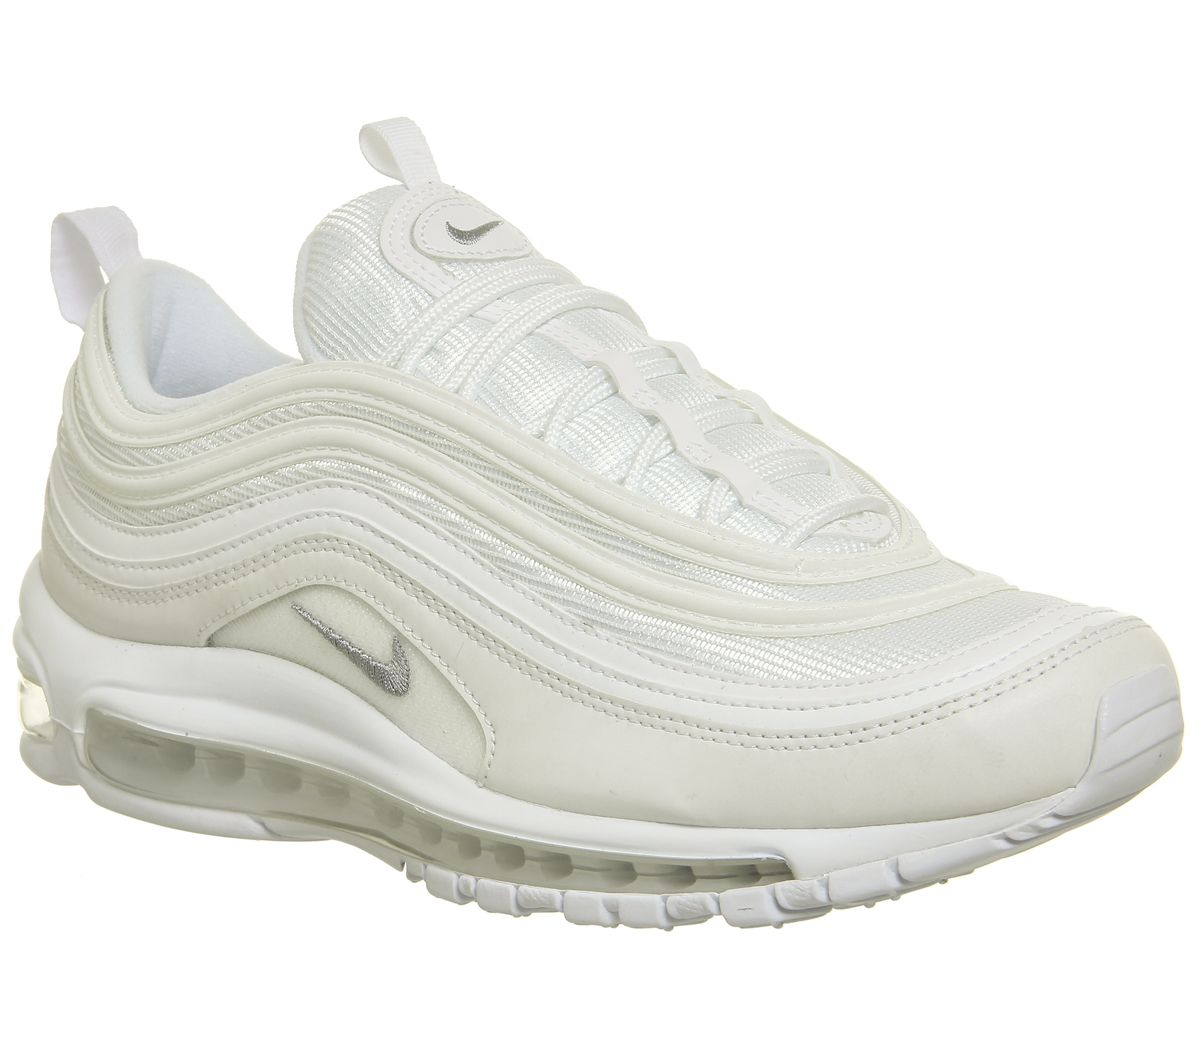 best website 3c236 7edb8 Air Max 97 Trainers